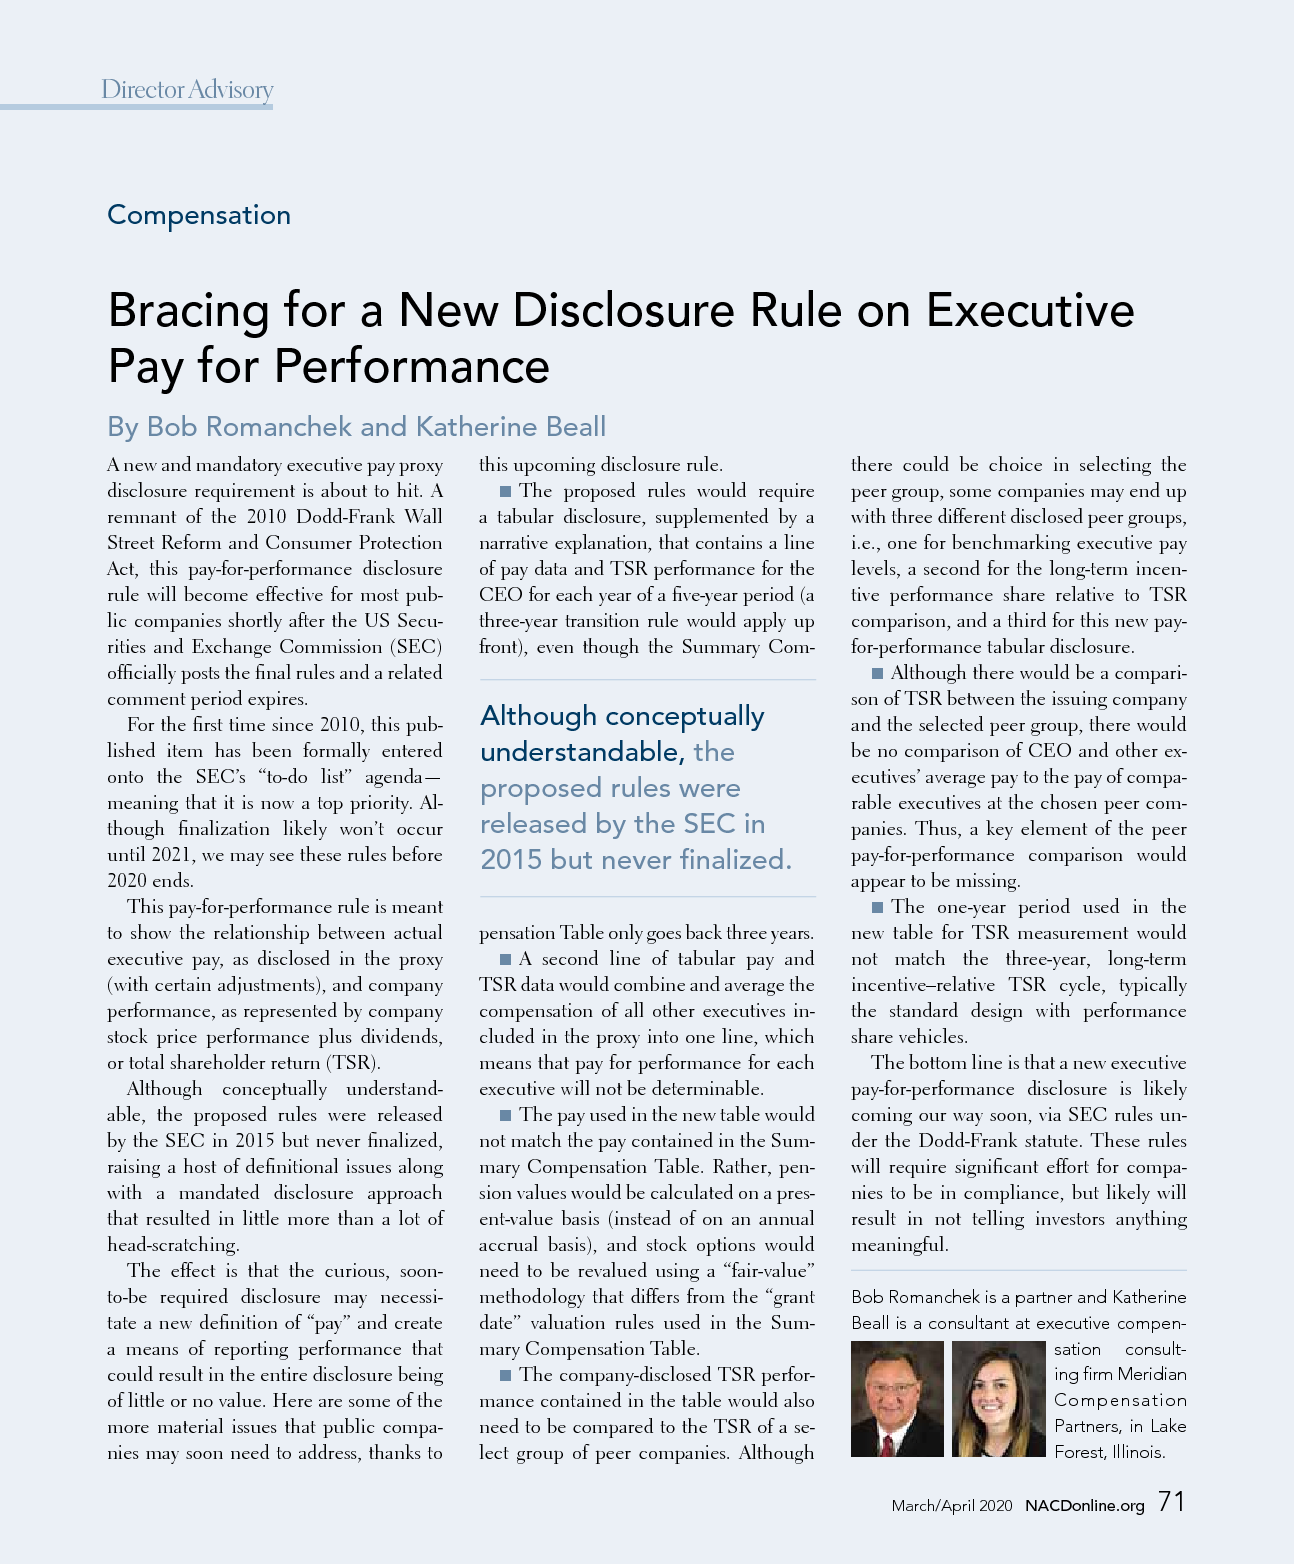 Bracing for a New Disclosure Rule on Executive Pay for Performance (PDF)